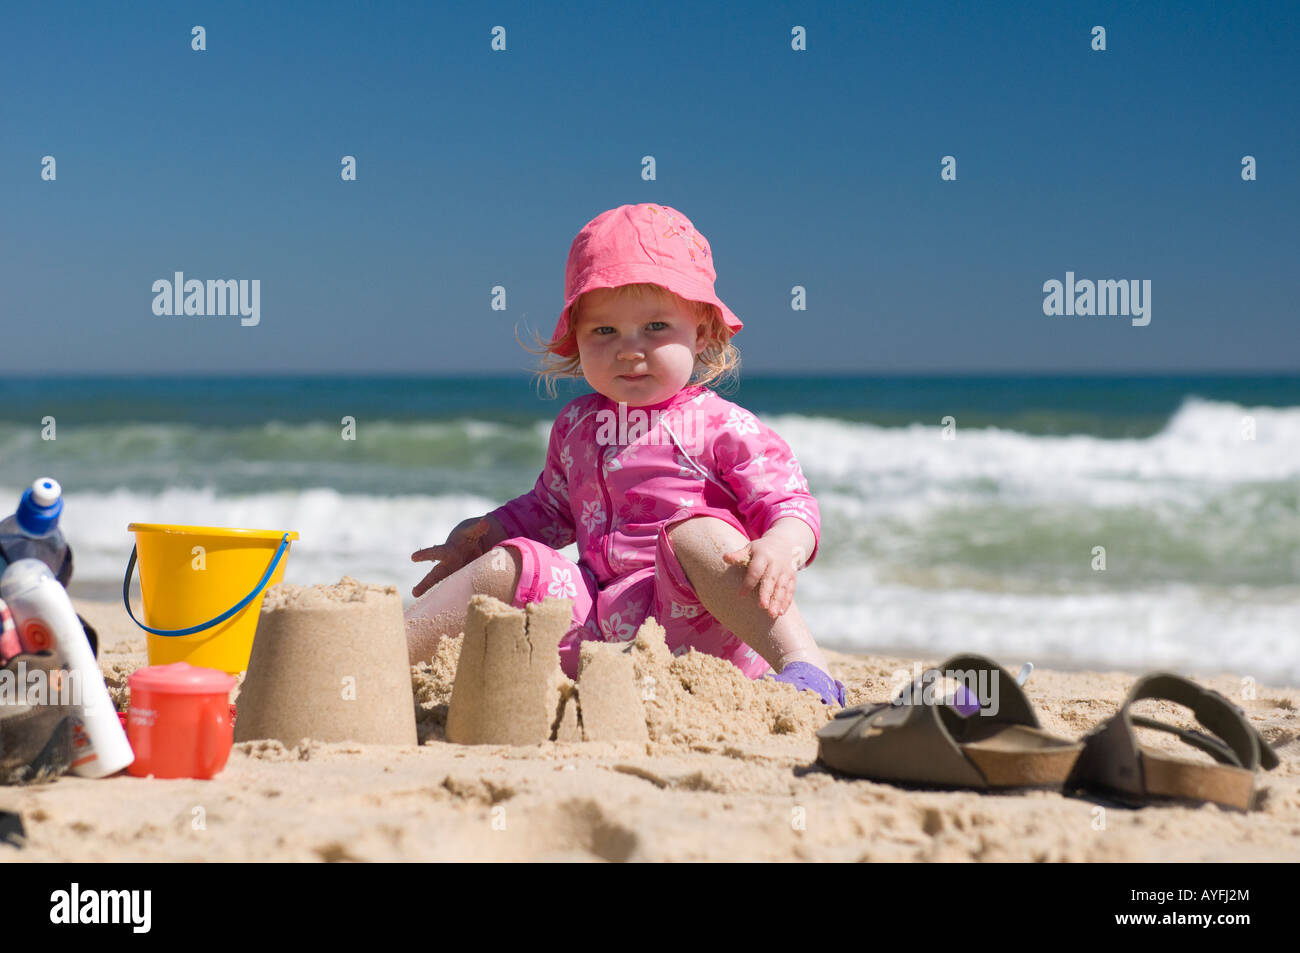 Toddler playing on the beach in Ilha de Tavira, Portugal - Stock Image